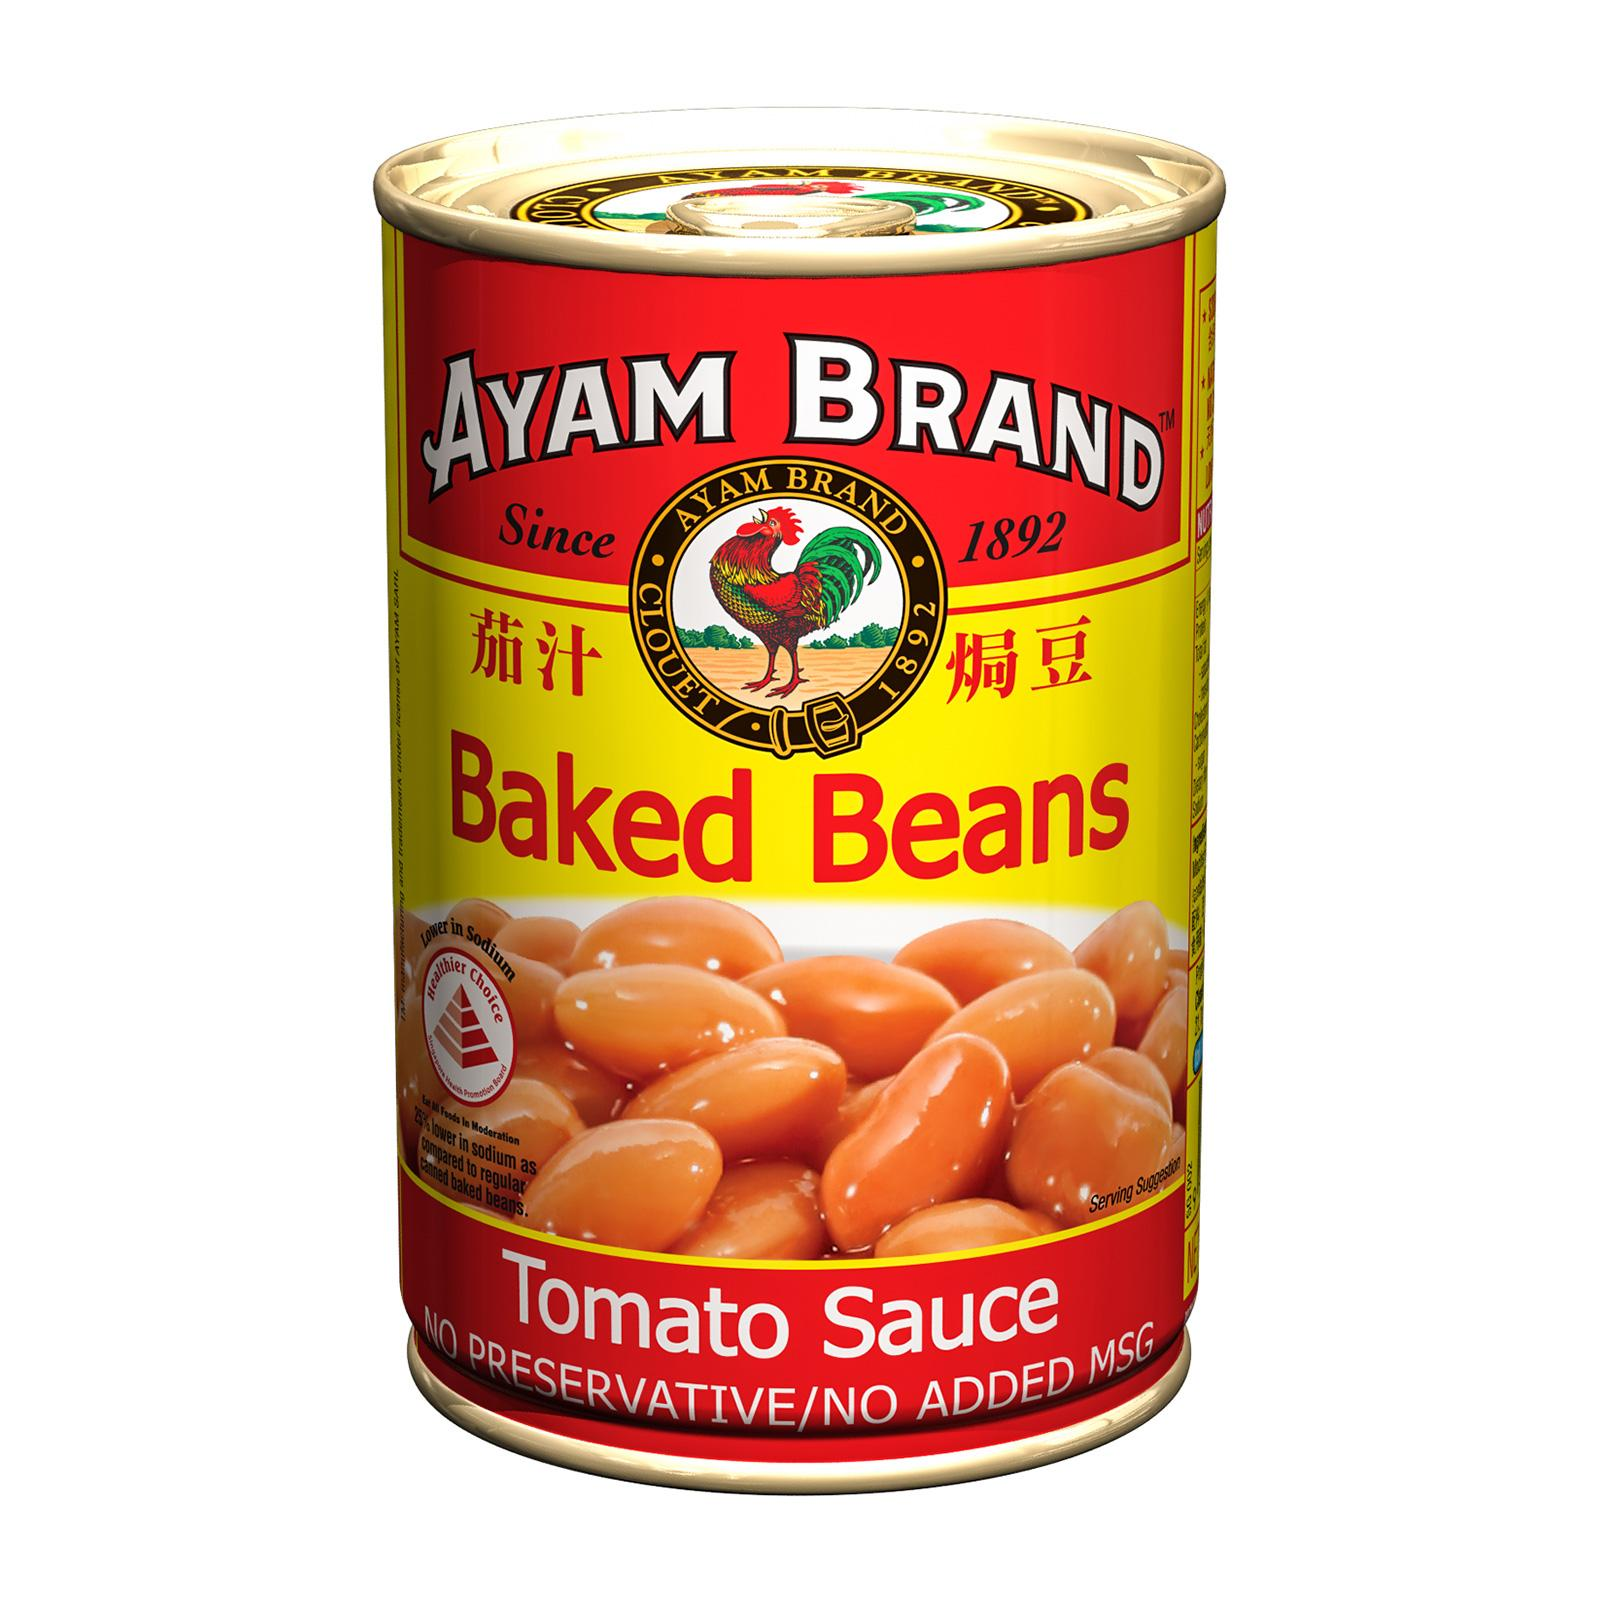 Ayam Brand Baked Bean in Tomato Sauce 425g